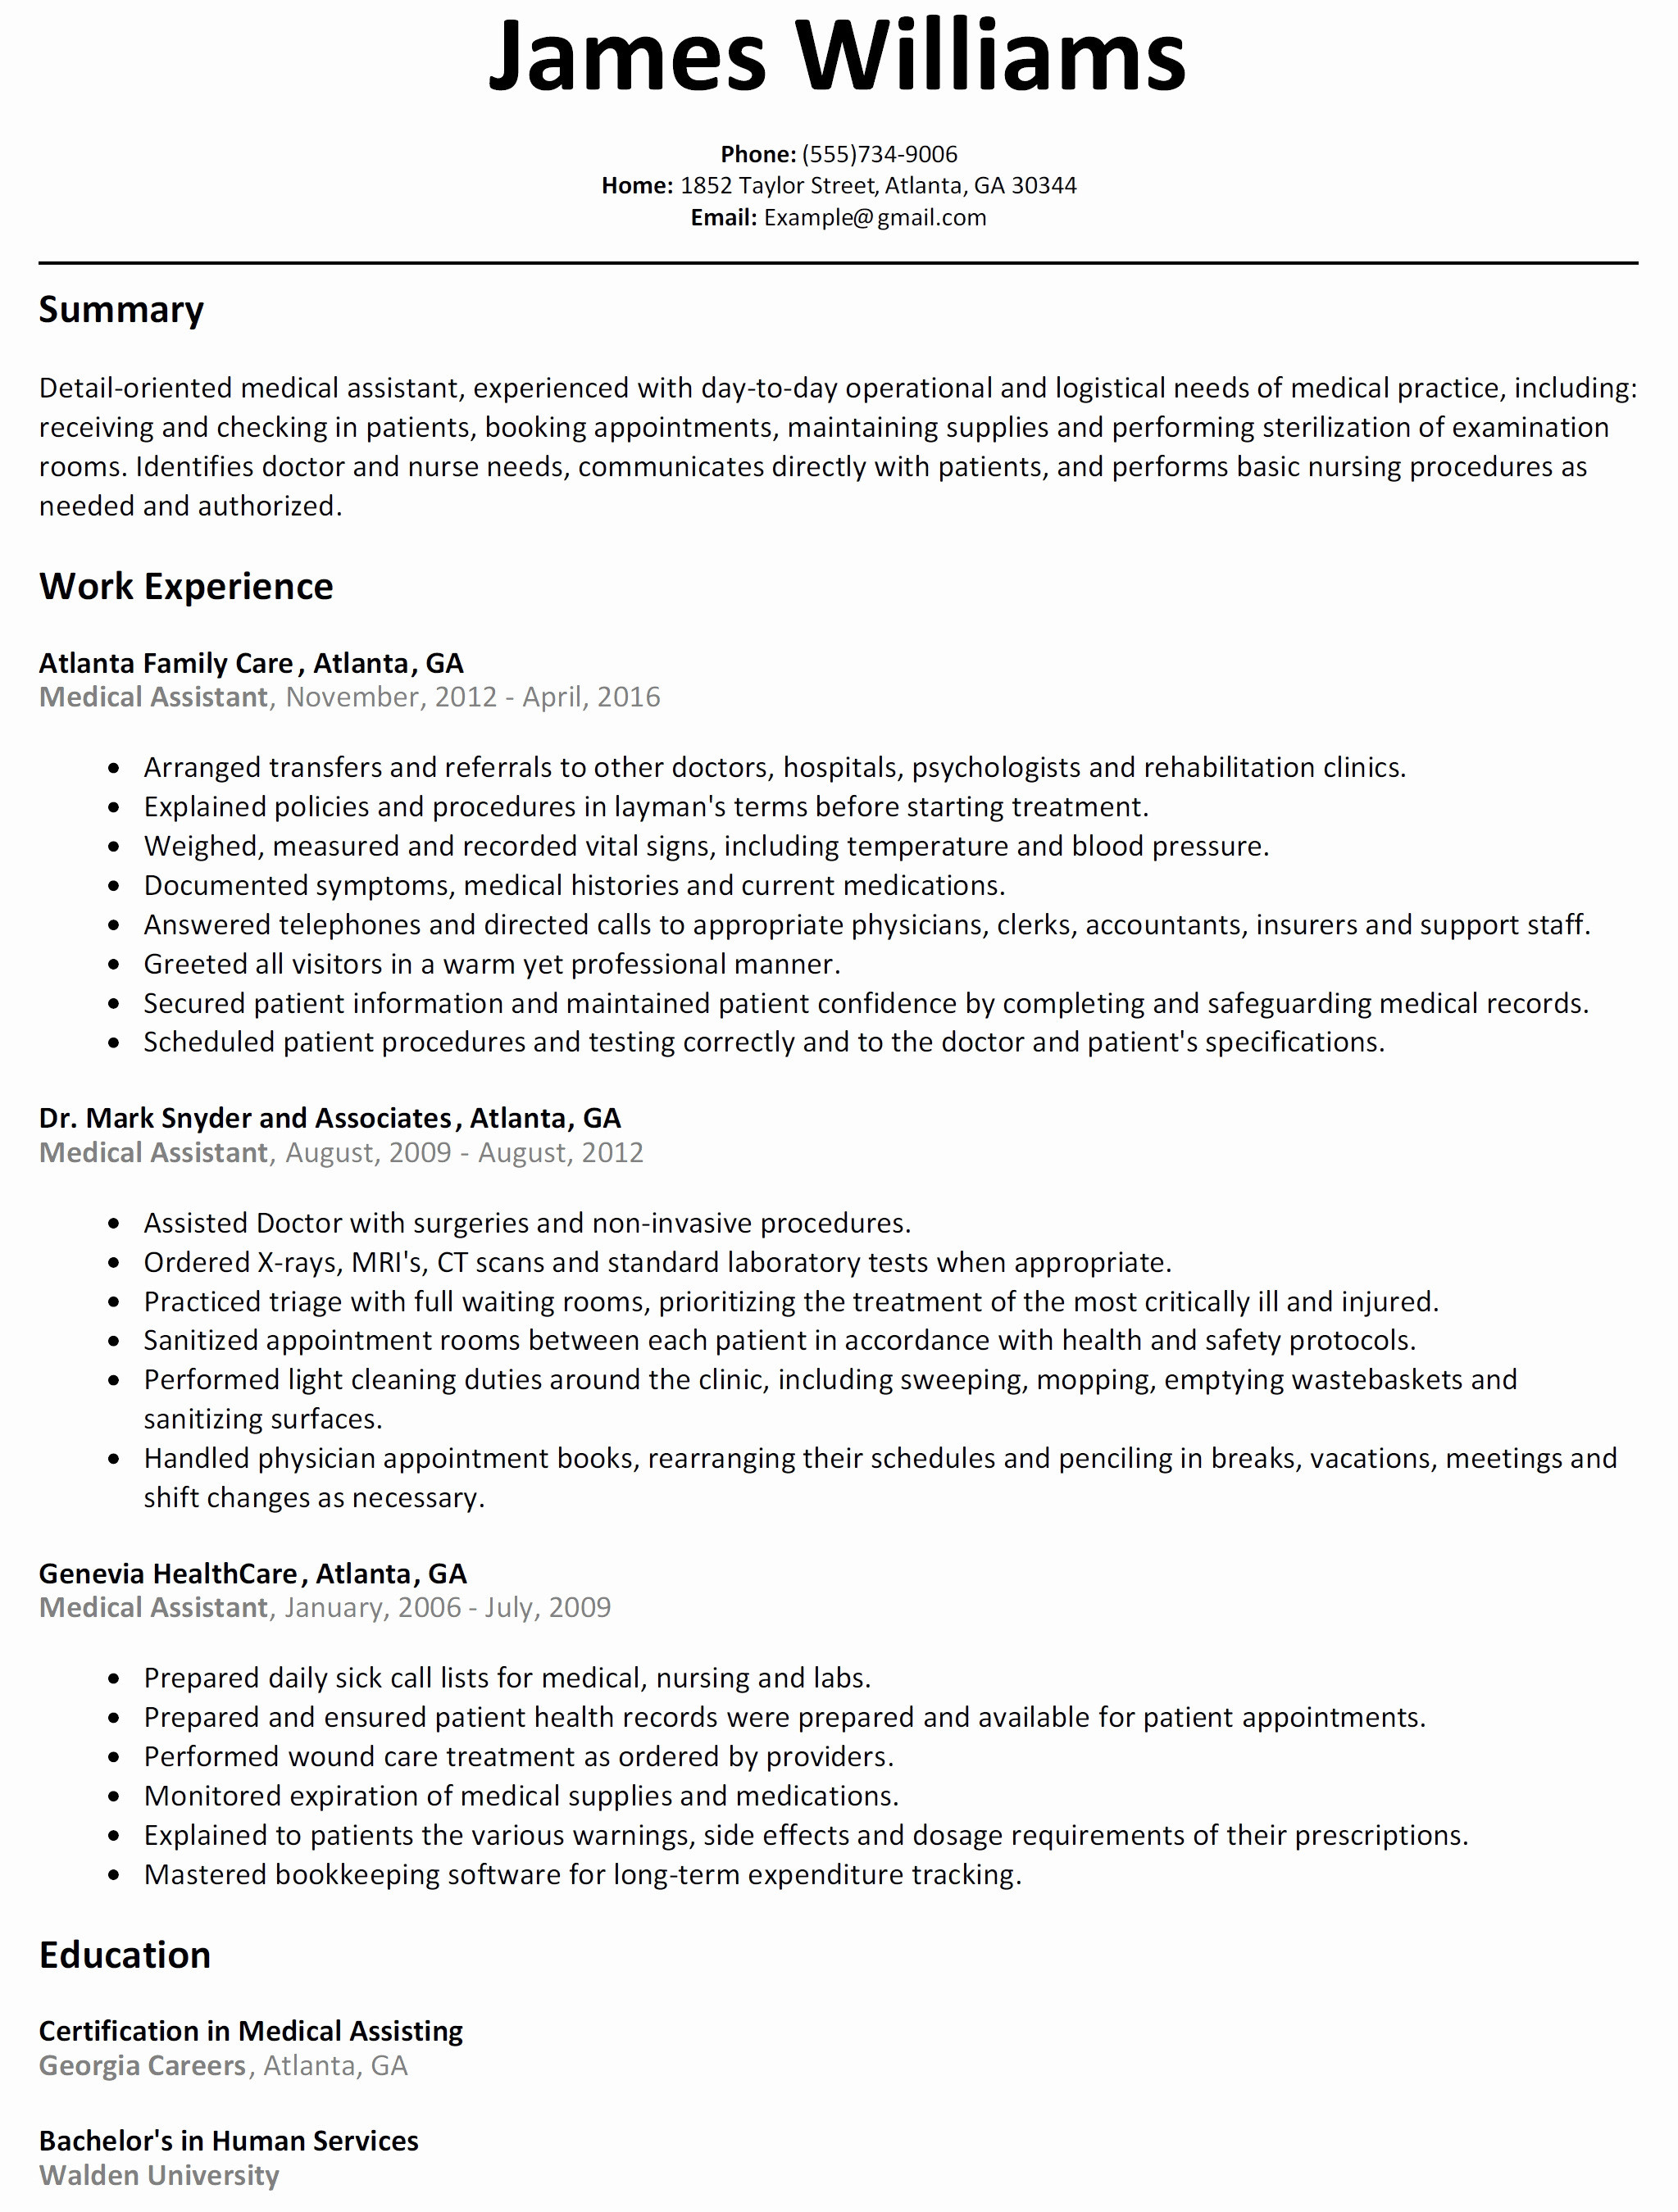 Resume Addendum Template - Awesome Free Resume Templates Valid Academic Resume Examples Awesome